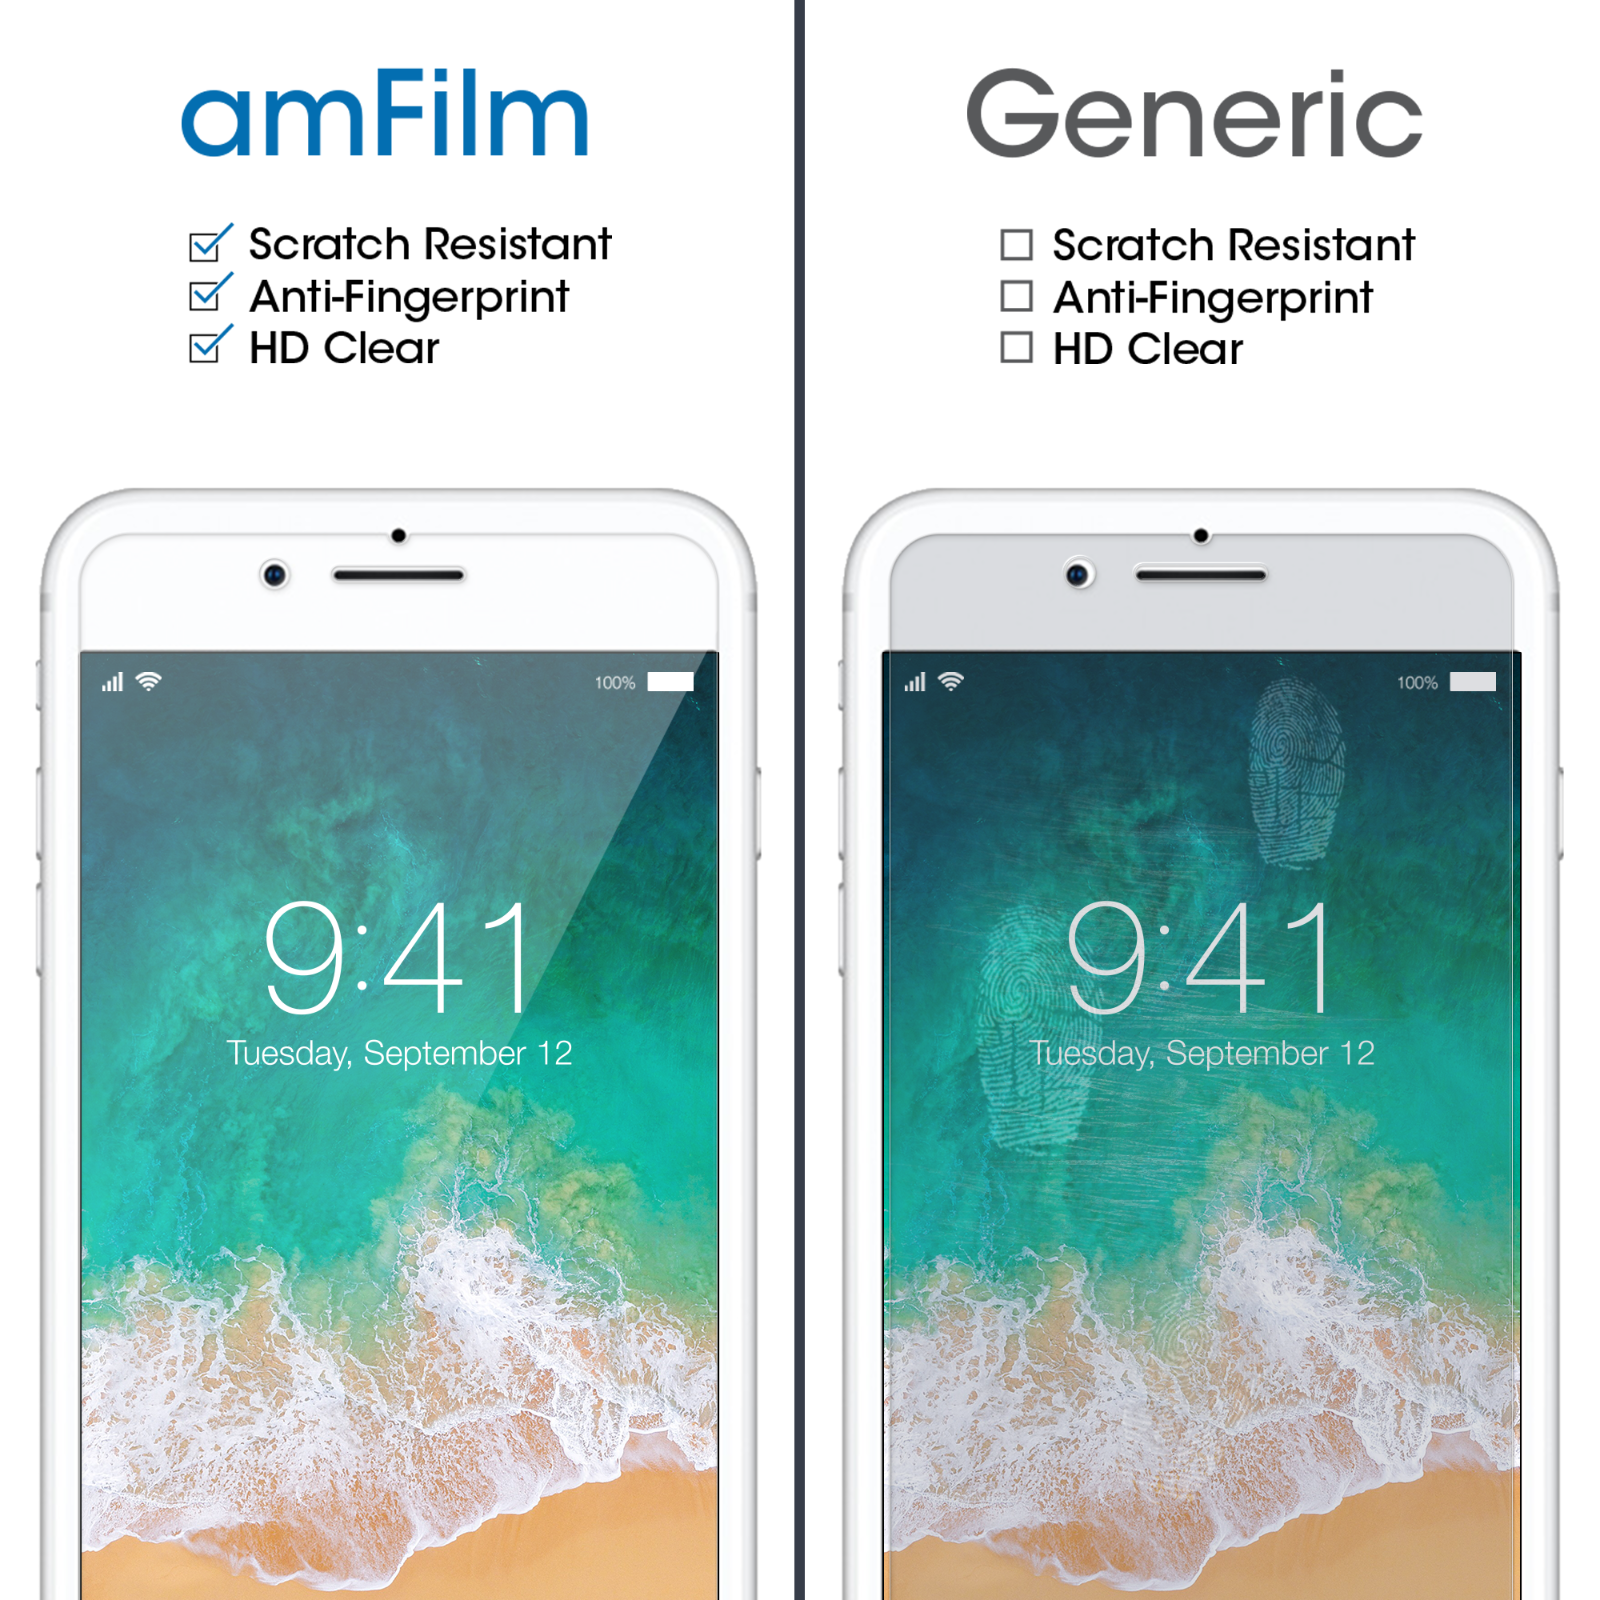 Premium Real amFilm Tempered Glass Screen Protector for iPhone 8/7/6S/6 (2 Pack) 5